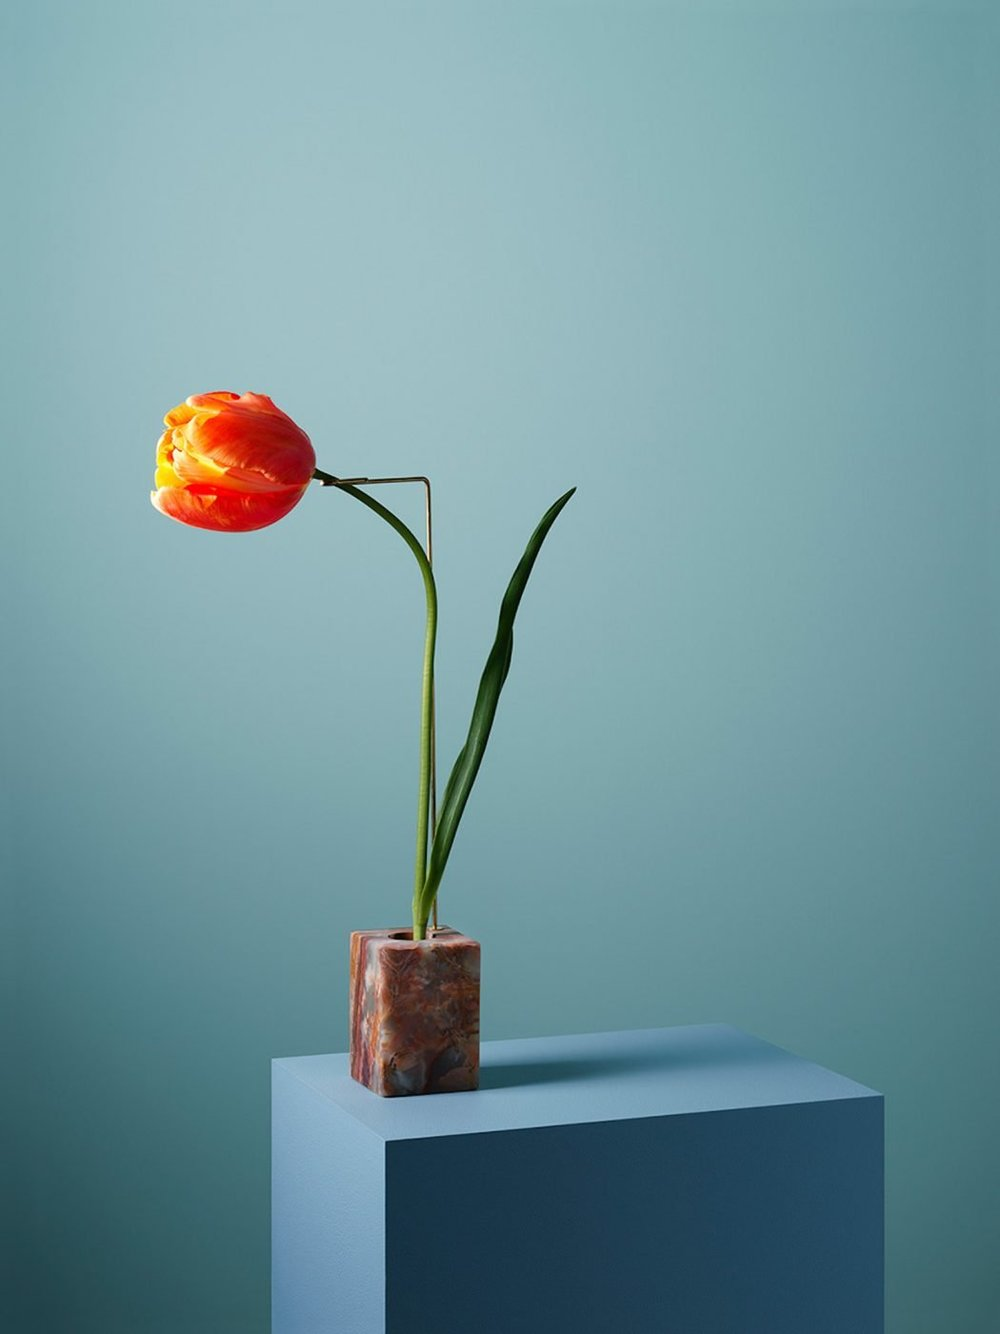 Carl Kleiner presents the posture vases collection